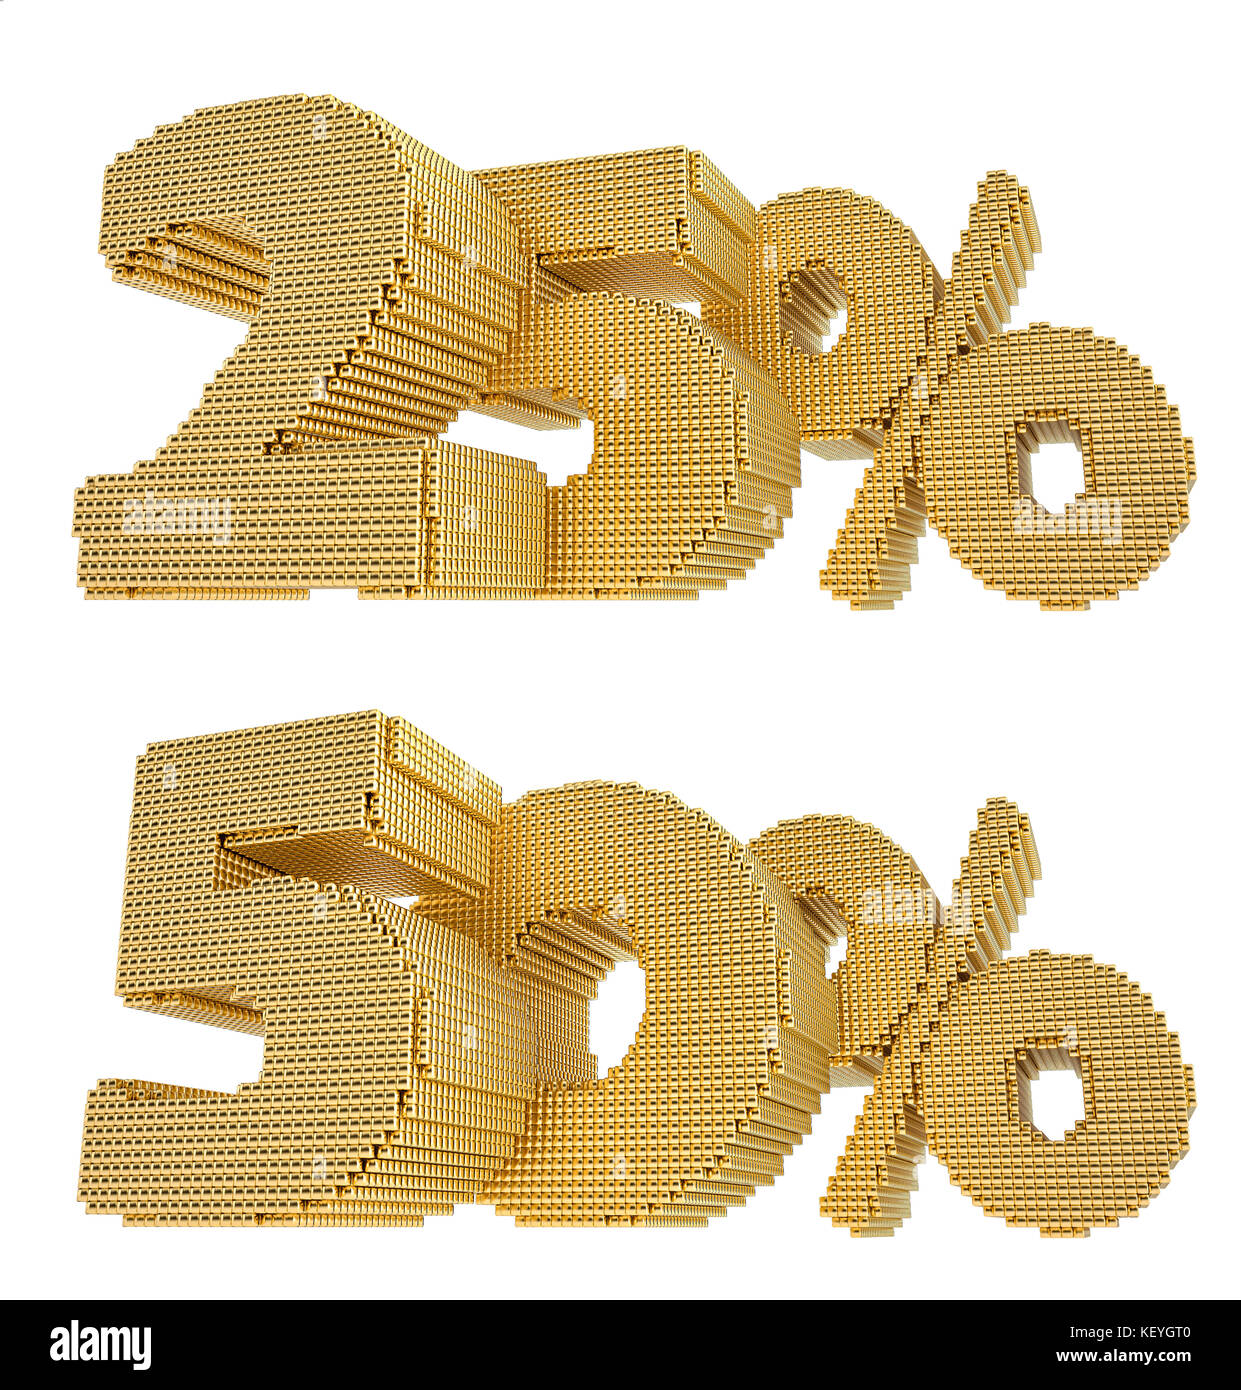 25% and 50%% discount - build from golden cubes - isolated on white background - 3D Rendering - Stock Image